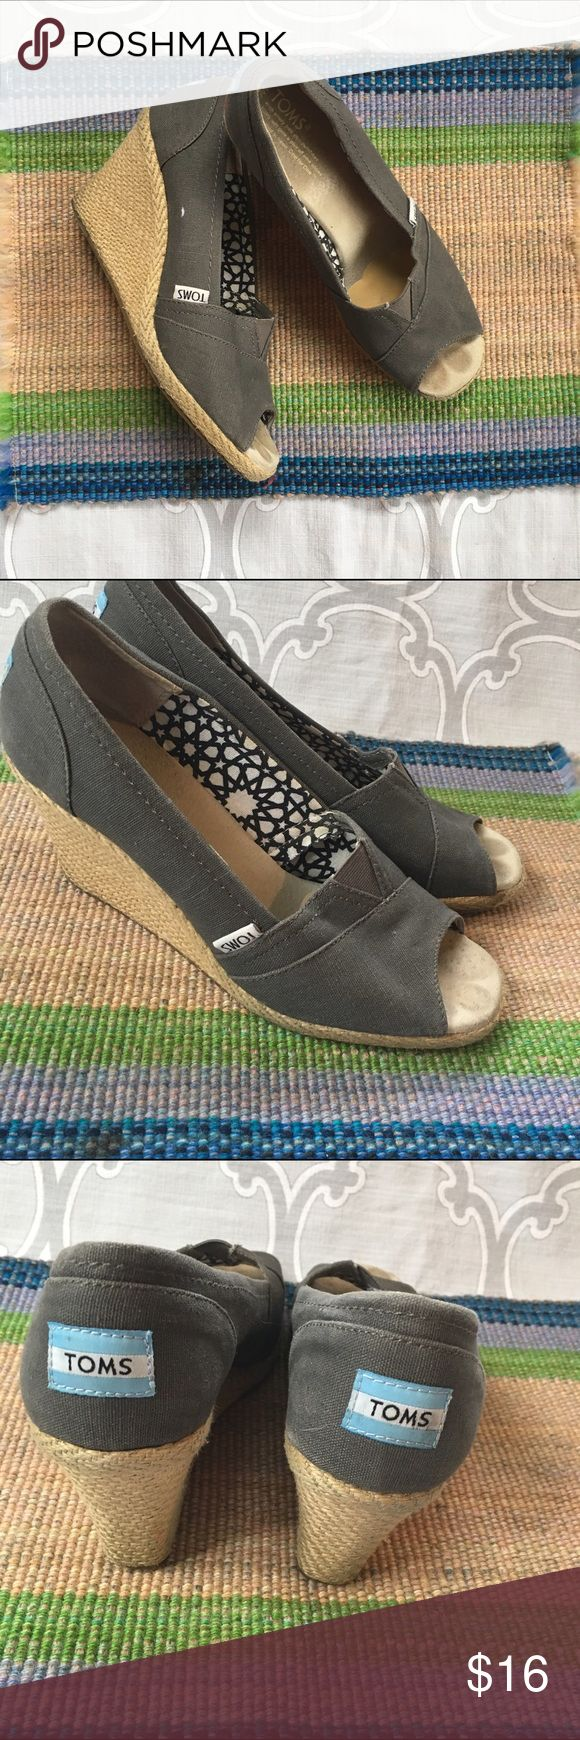 Toms wedges Grey Size 8 The perfect spring and summer wardrobe staple, the Toms wedge in a great neutral grey. They have gentle wear but they are still in beautiful condition. TOMS Shoes Espadrilles